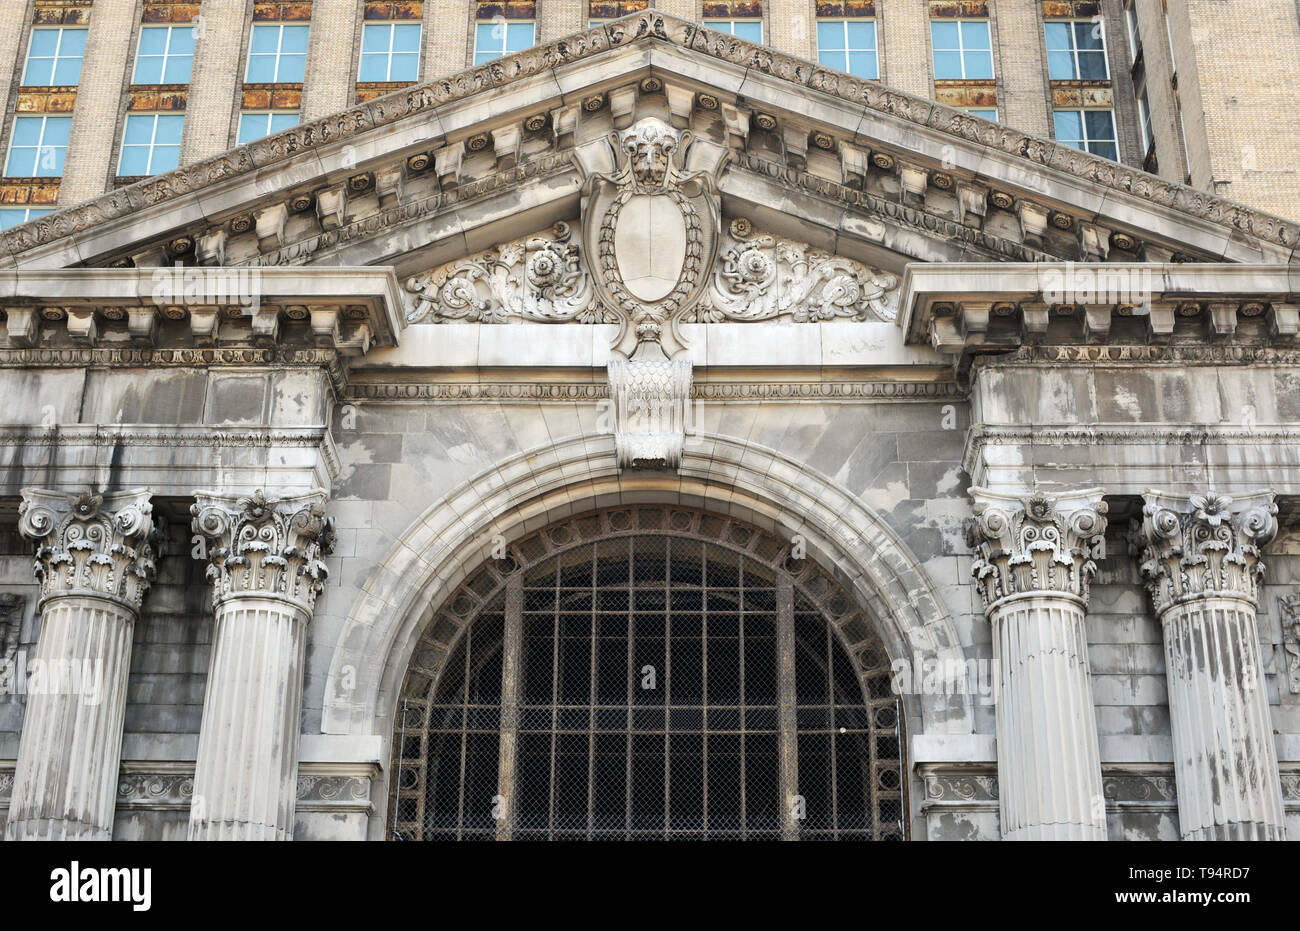 Detail of the long-abandoned Michigan Central Station rail depot in Detroit, Michigan. The landmark was purchased by the Ford Motor Company in 2018. - Stock Image